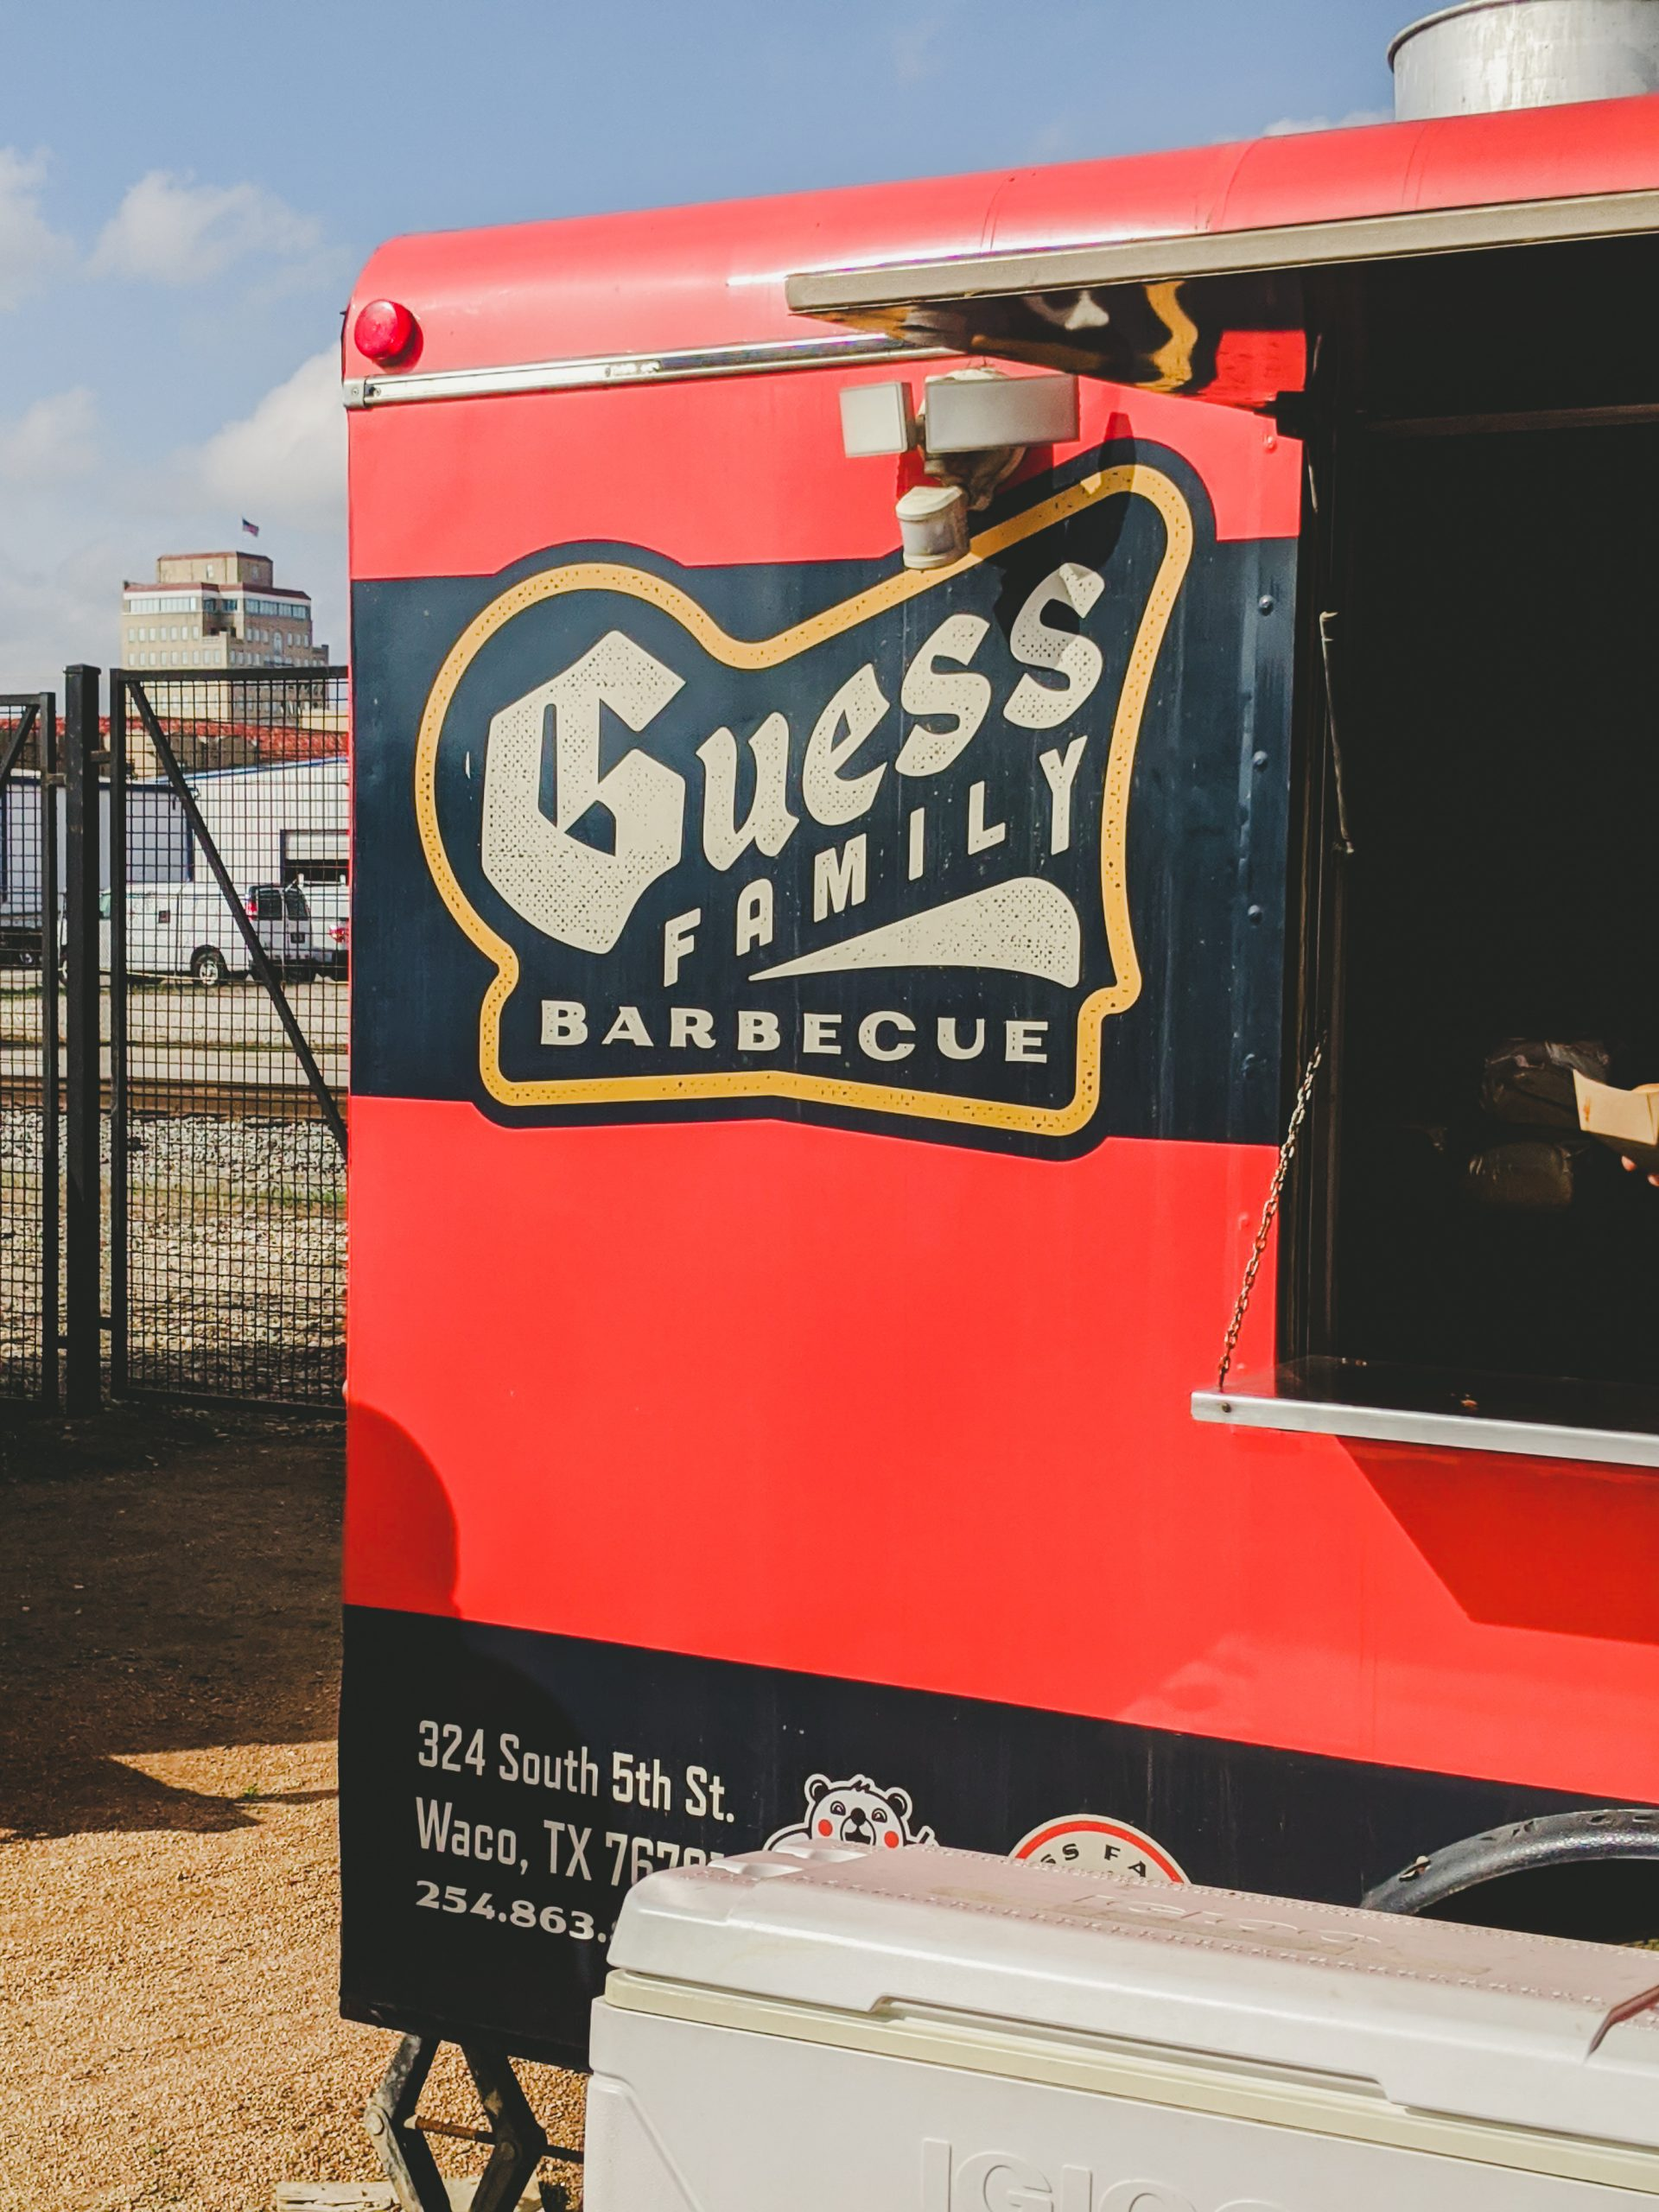 guess family barbecue trailer at magnolia silos